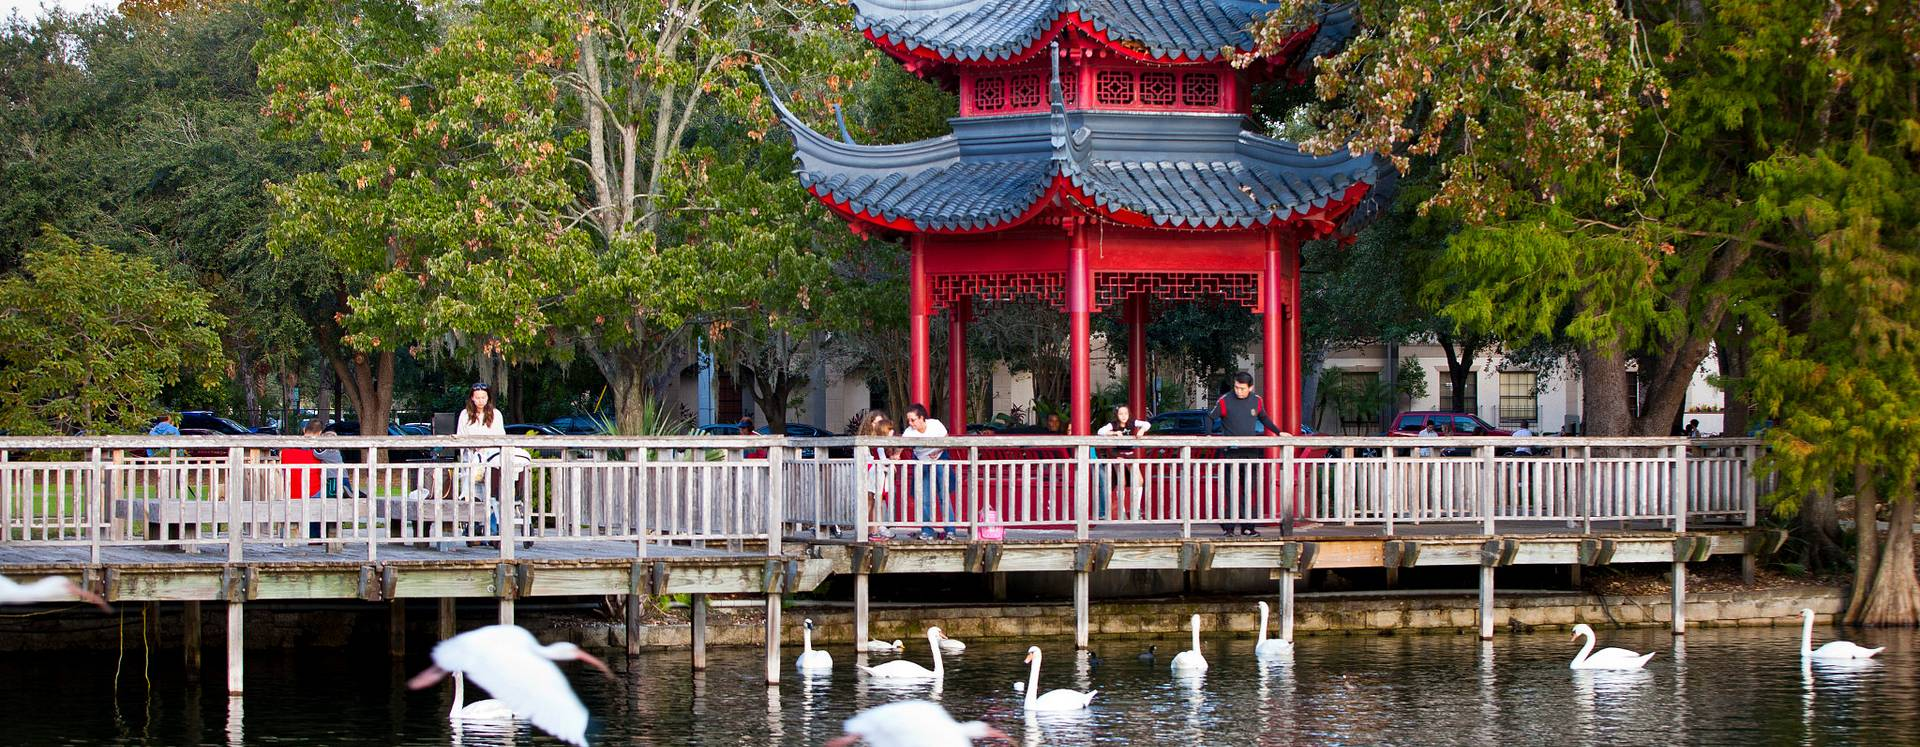 People watching swans from a Chinese pagoda at Lake Eola